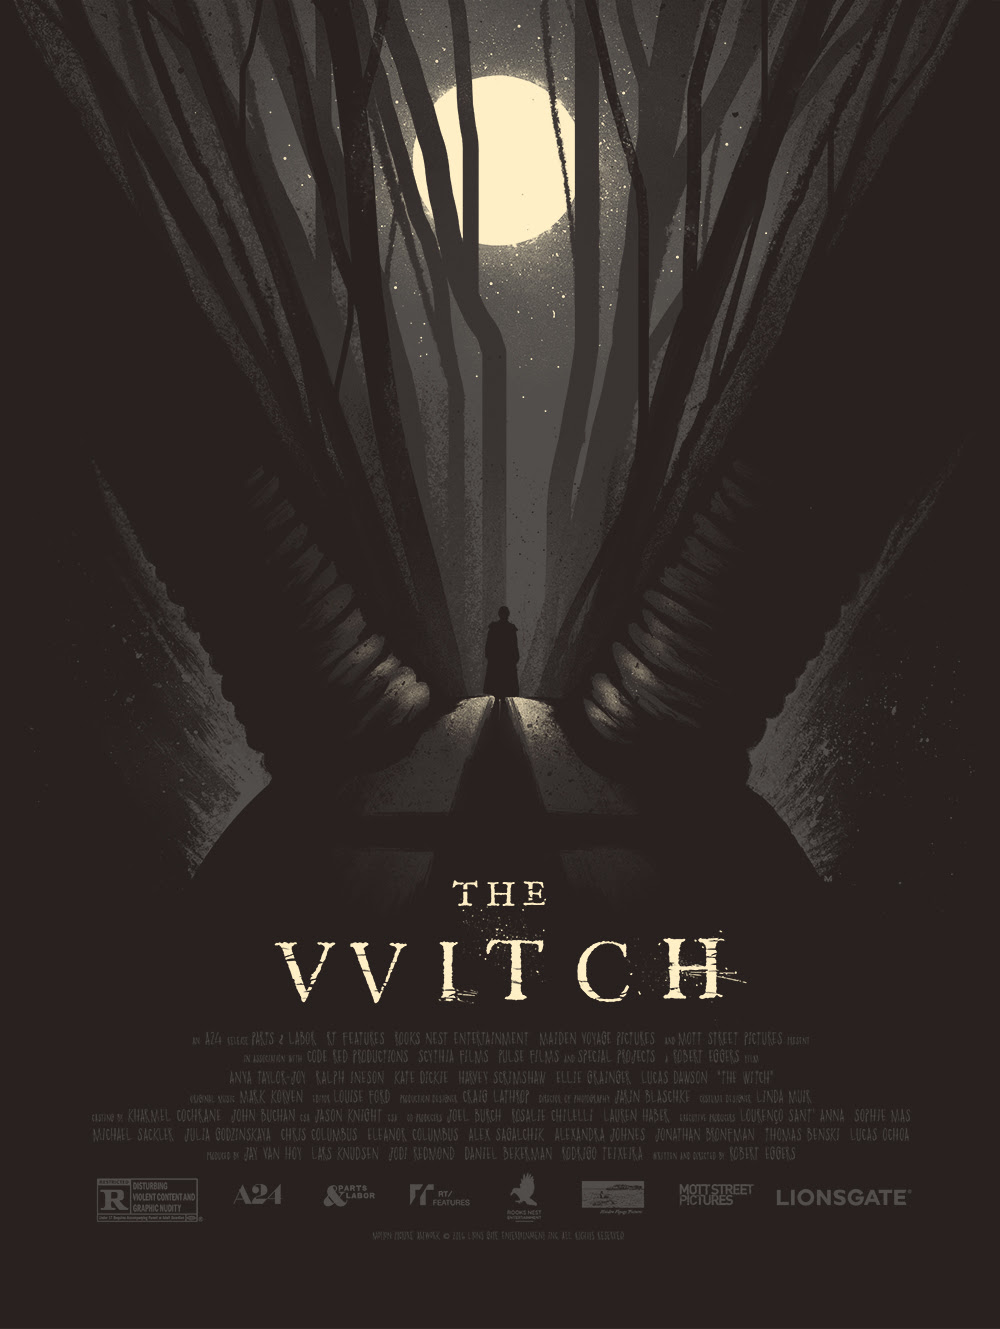 David-Moscati-The-Witch-Movie-Poster-2016-Hero-Complex-Gallery